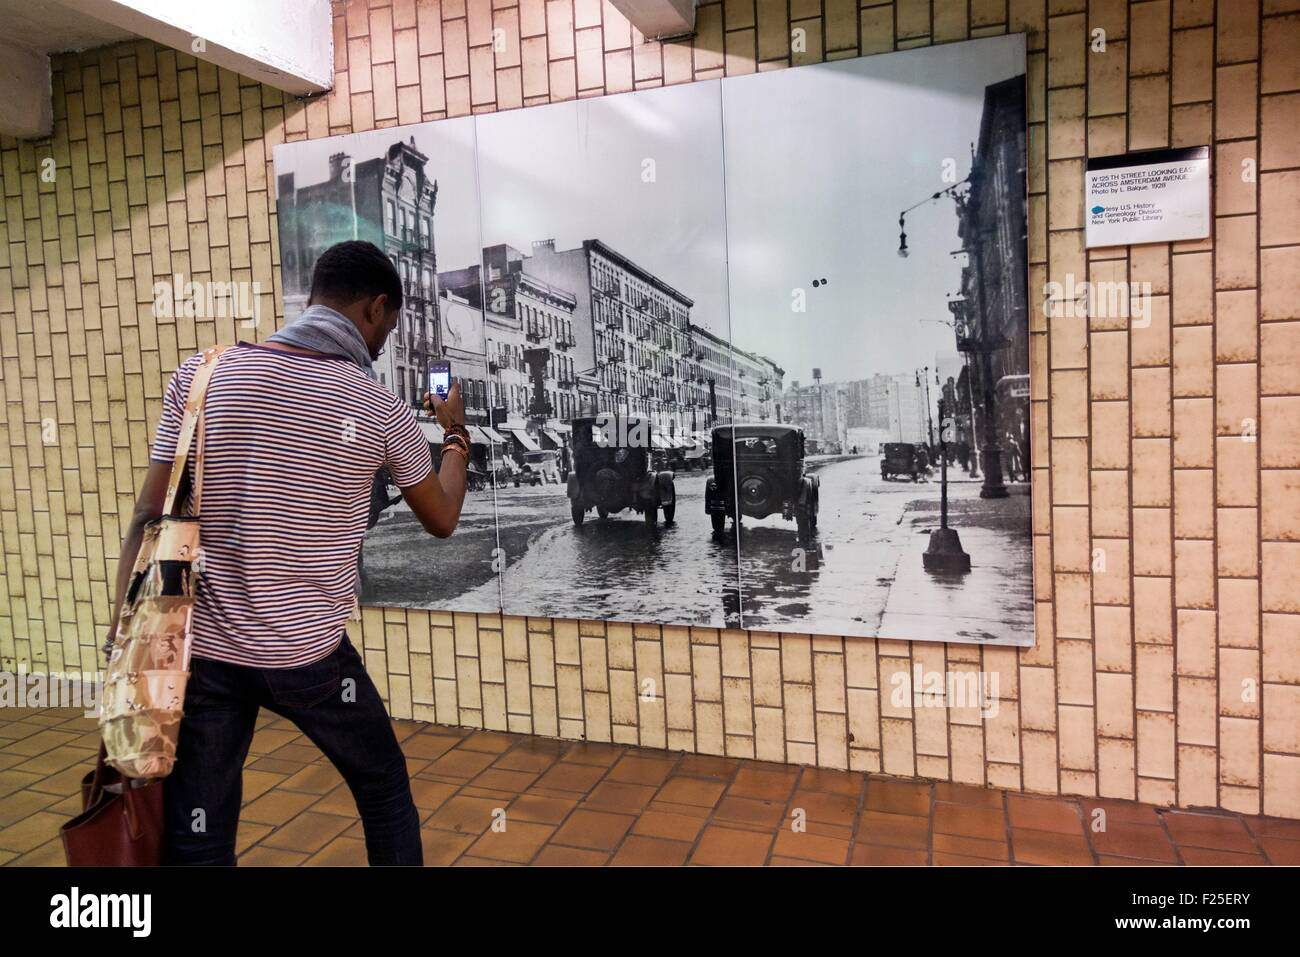 United States, New York, Manhattan, Harlem, subway 125 St. - Stock Image